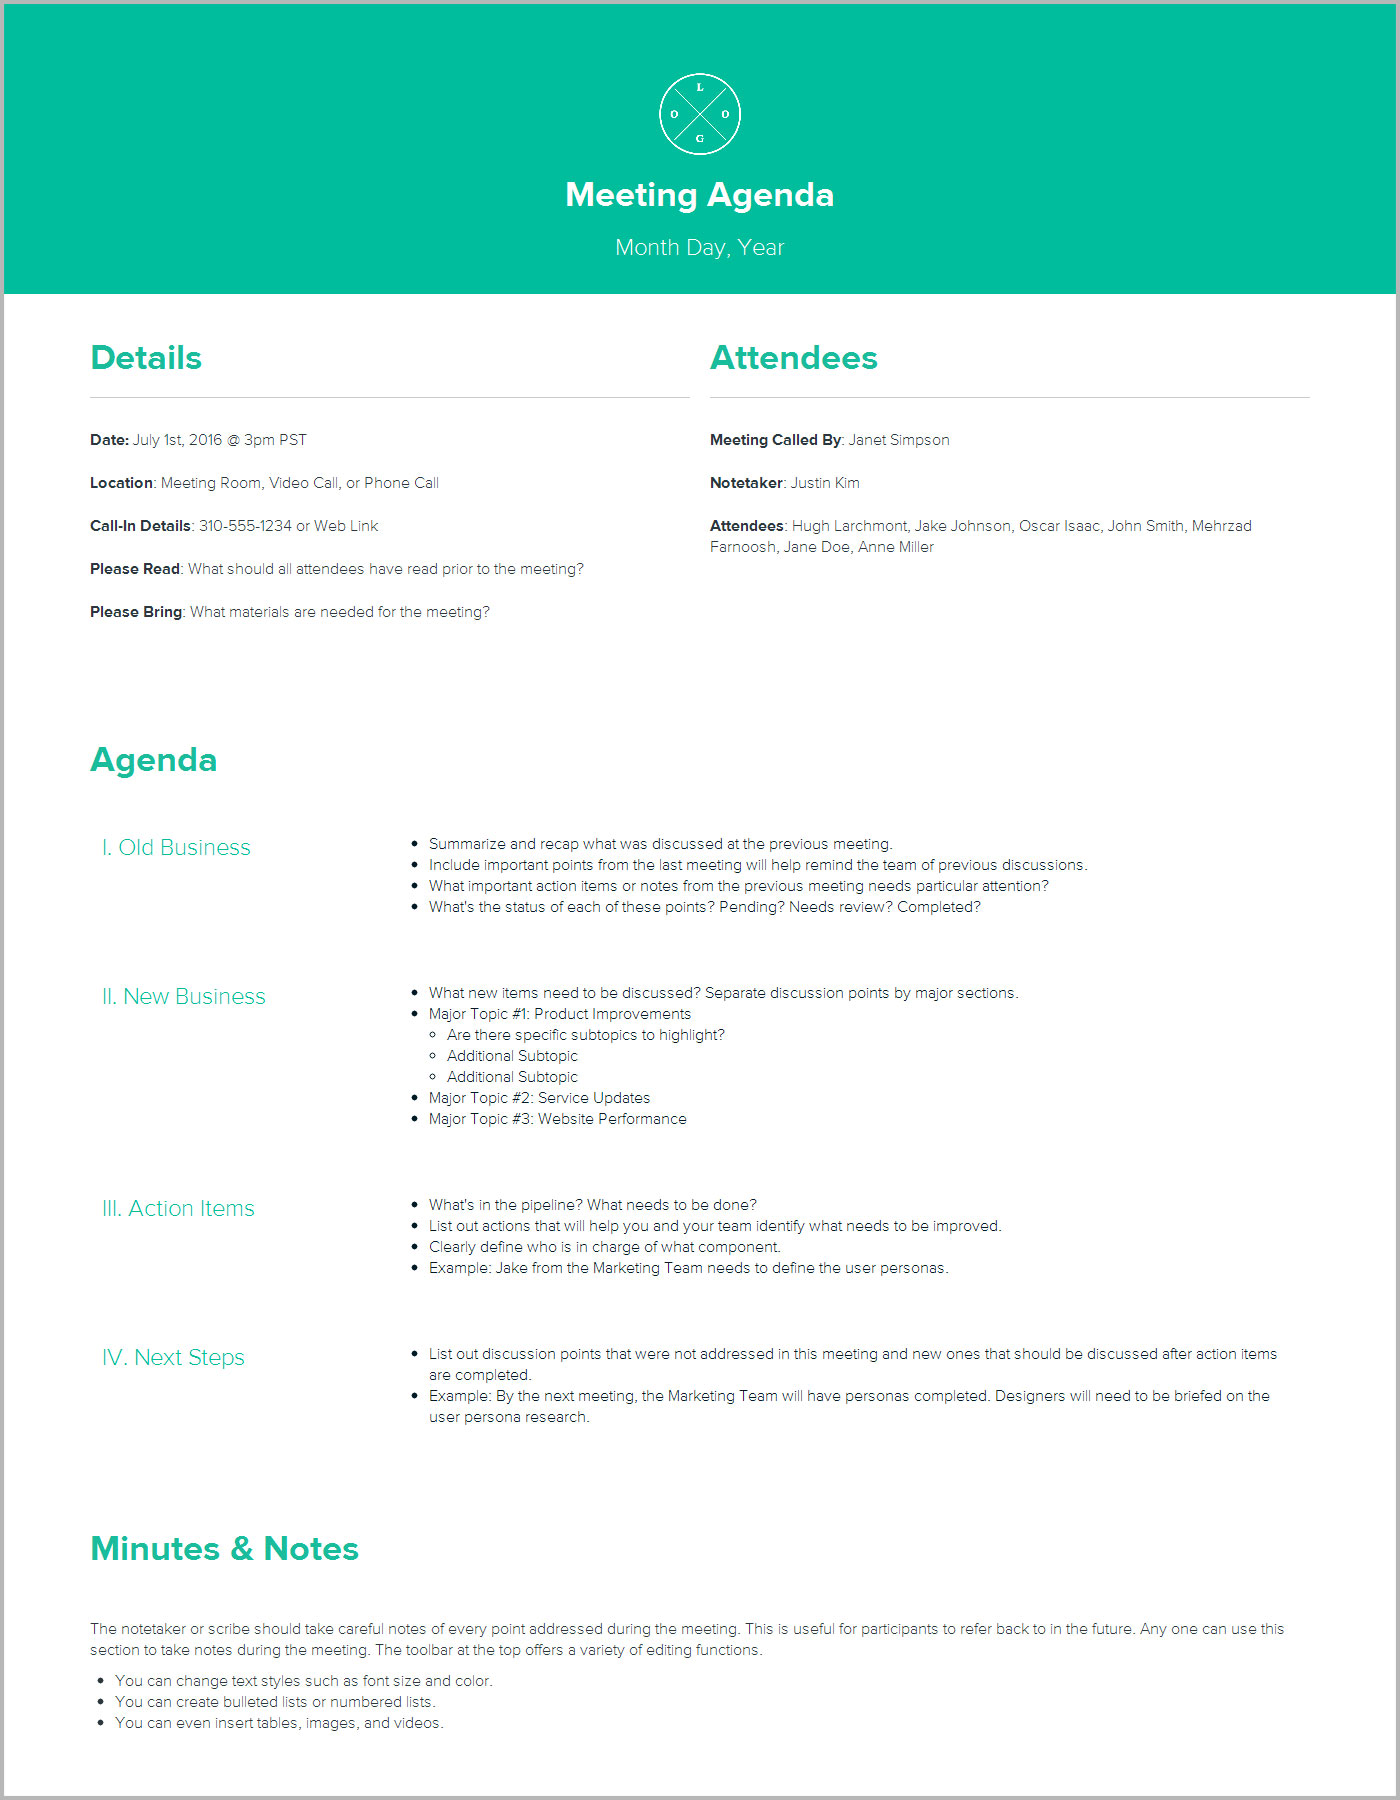 Xtensio – Template for Agenda